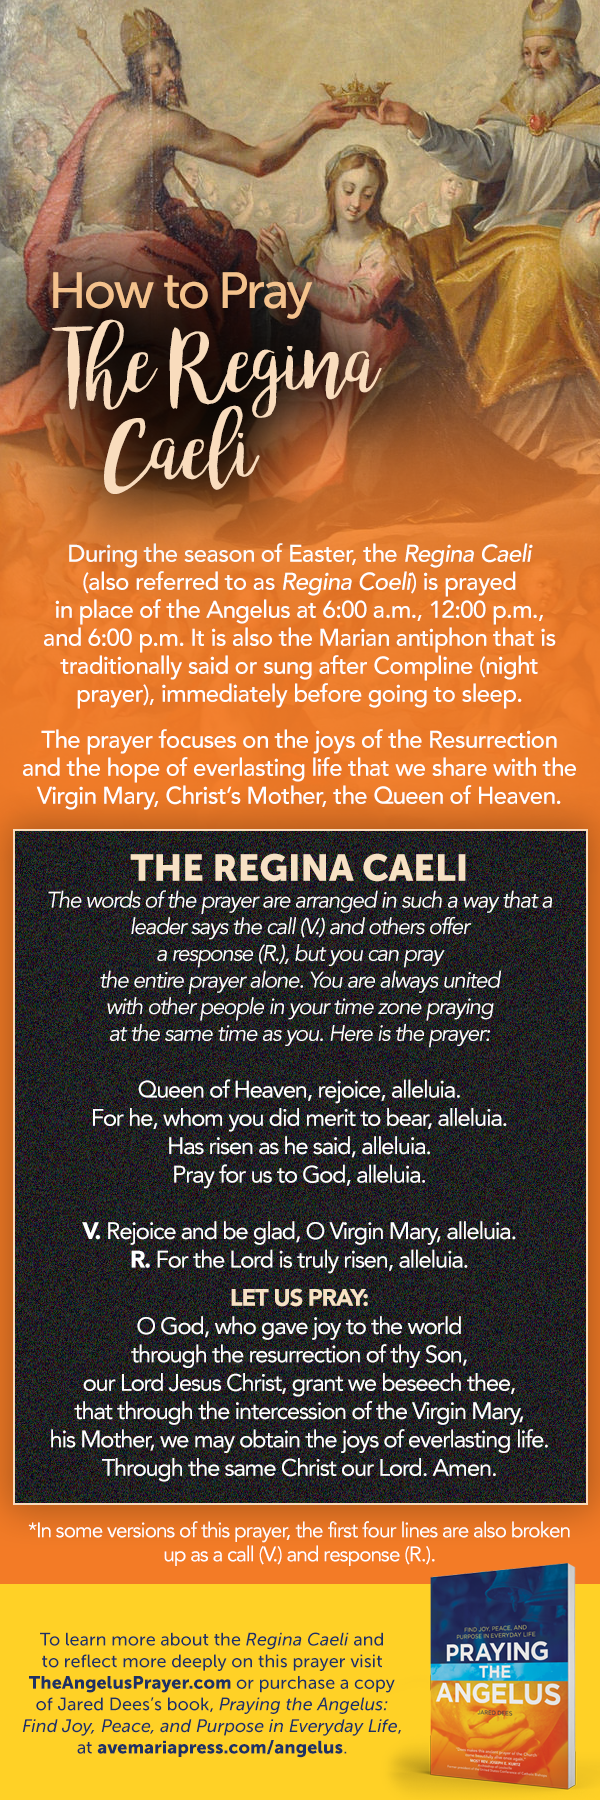 """A fun way to pray the Regina Caeli with kids"" by Jared Dees (CatholicMom.com)"